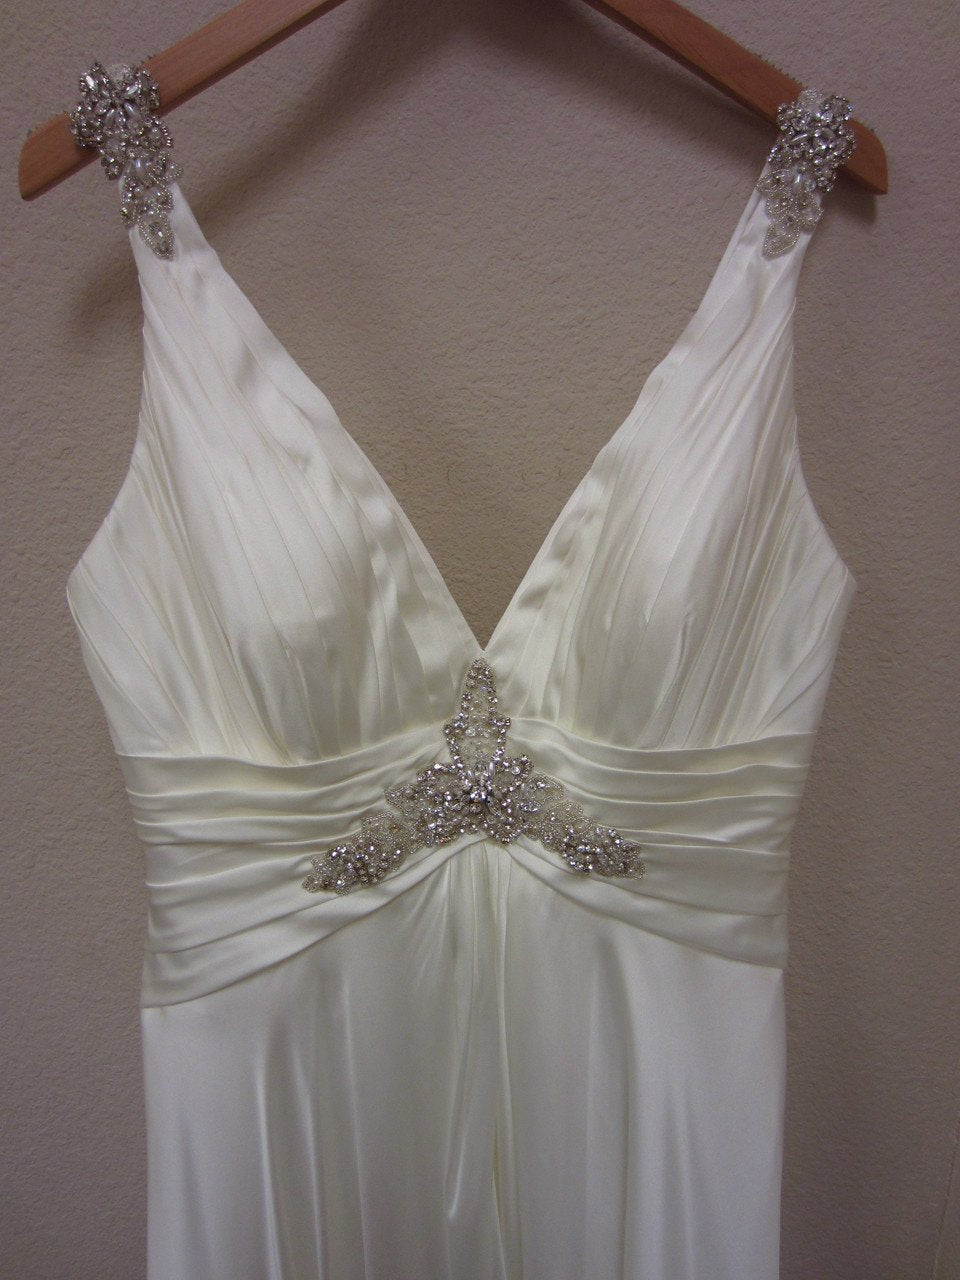 Allure 2361 Ivory/Silver size 14 In Stock Wedding Dress - Tom's Bridal